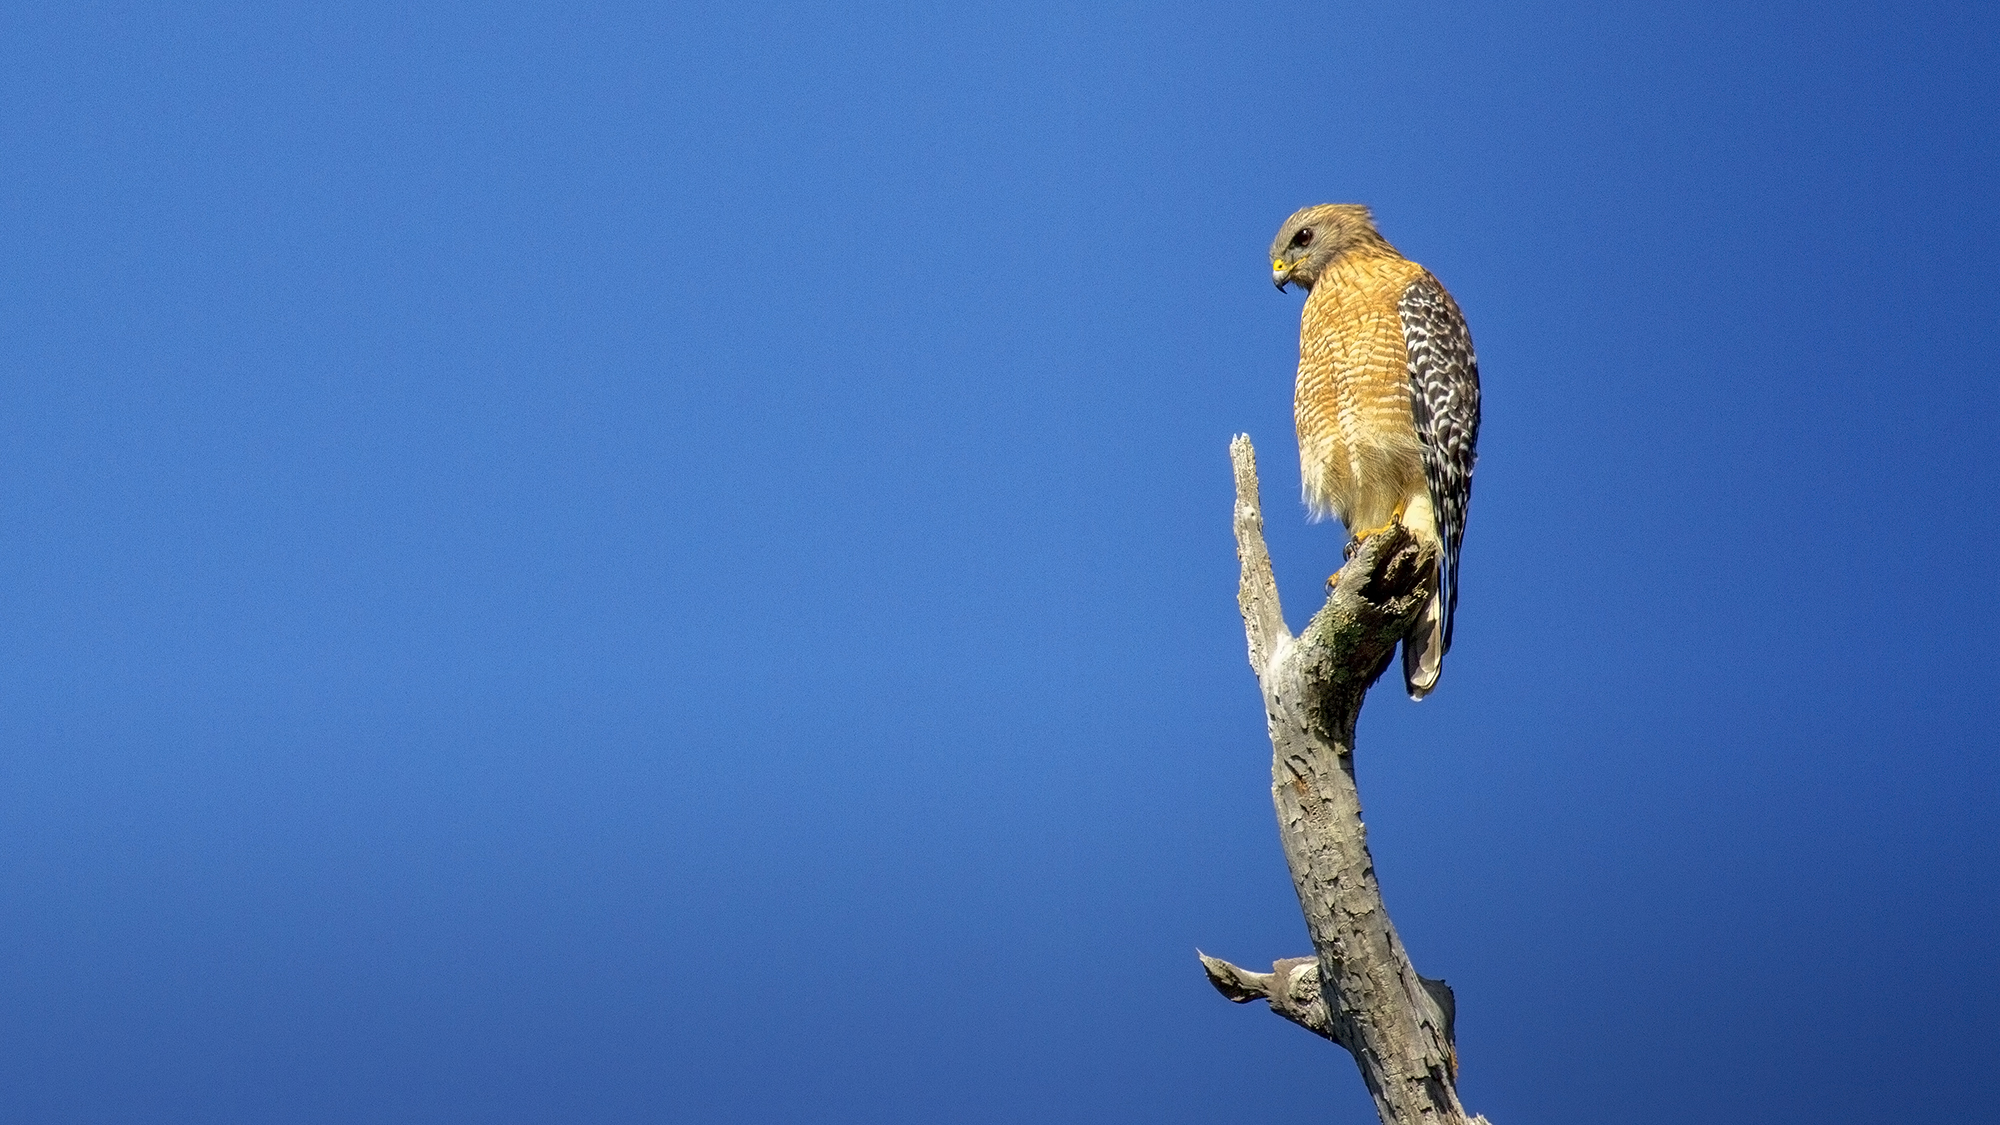 Red shouldered hawk spotted at the Corkscrew Swamp Sanctuary in Naples, FL last weekend.